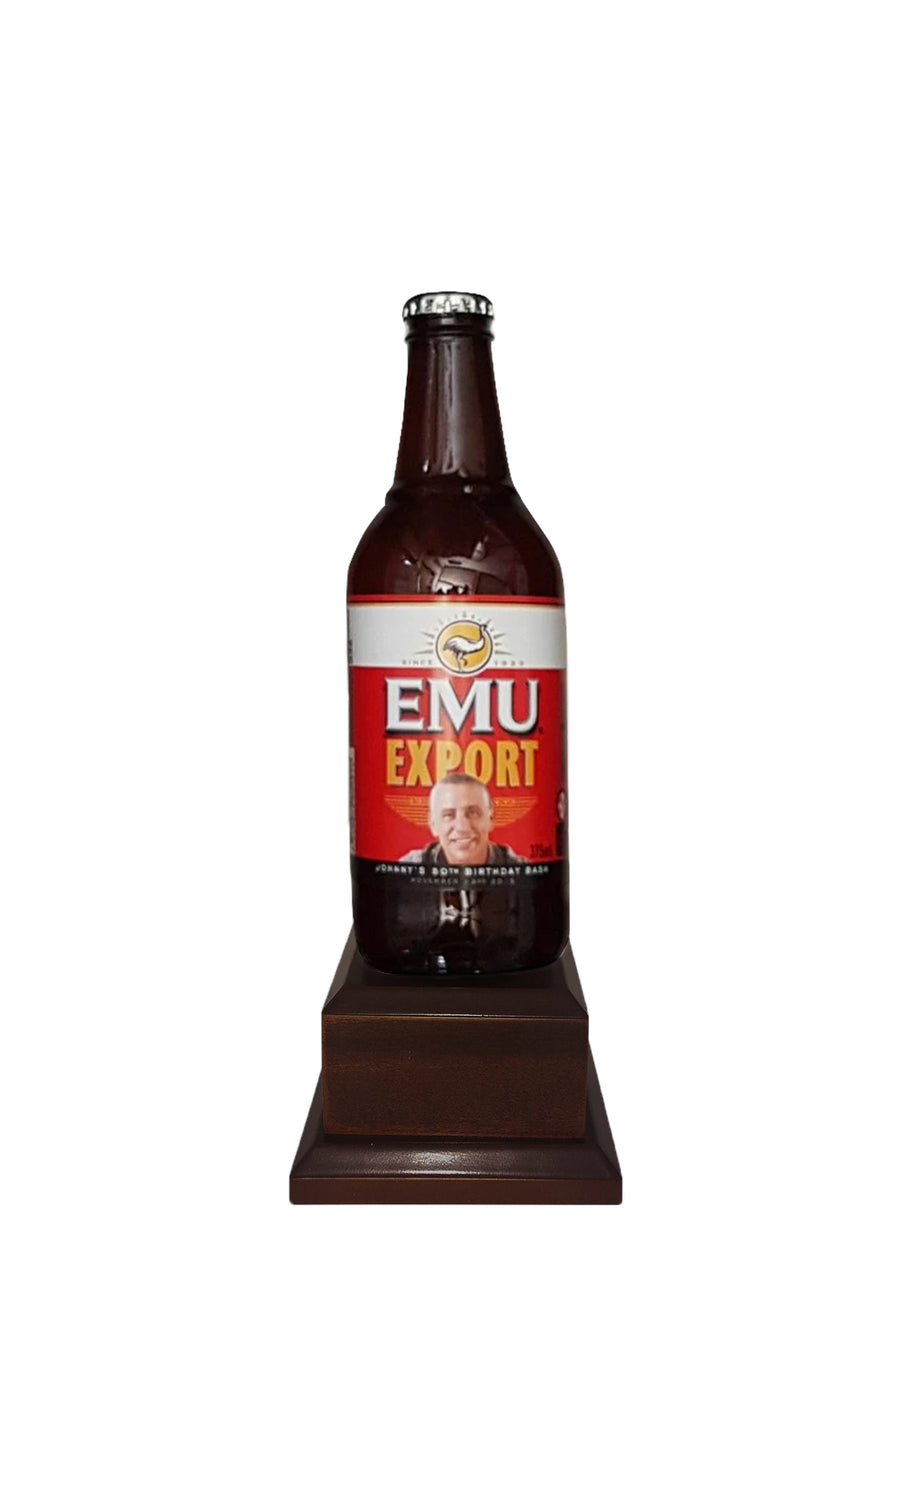 EMU EXPORT Bottle on Pedestal with PERSONALISED LABEL